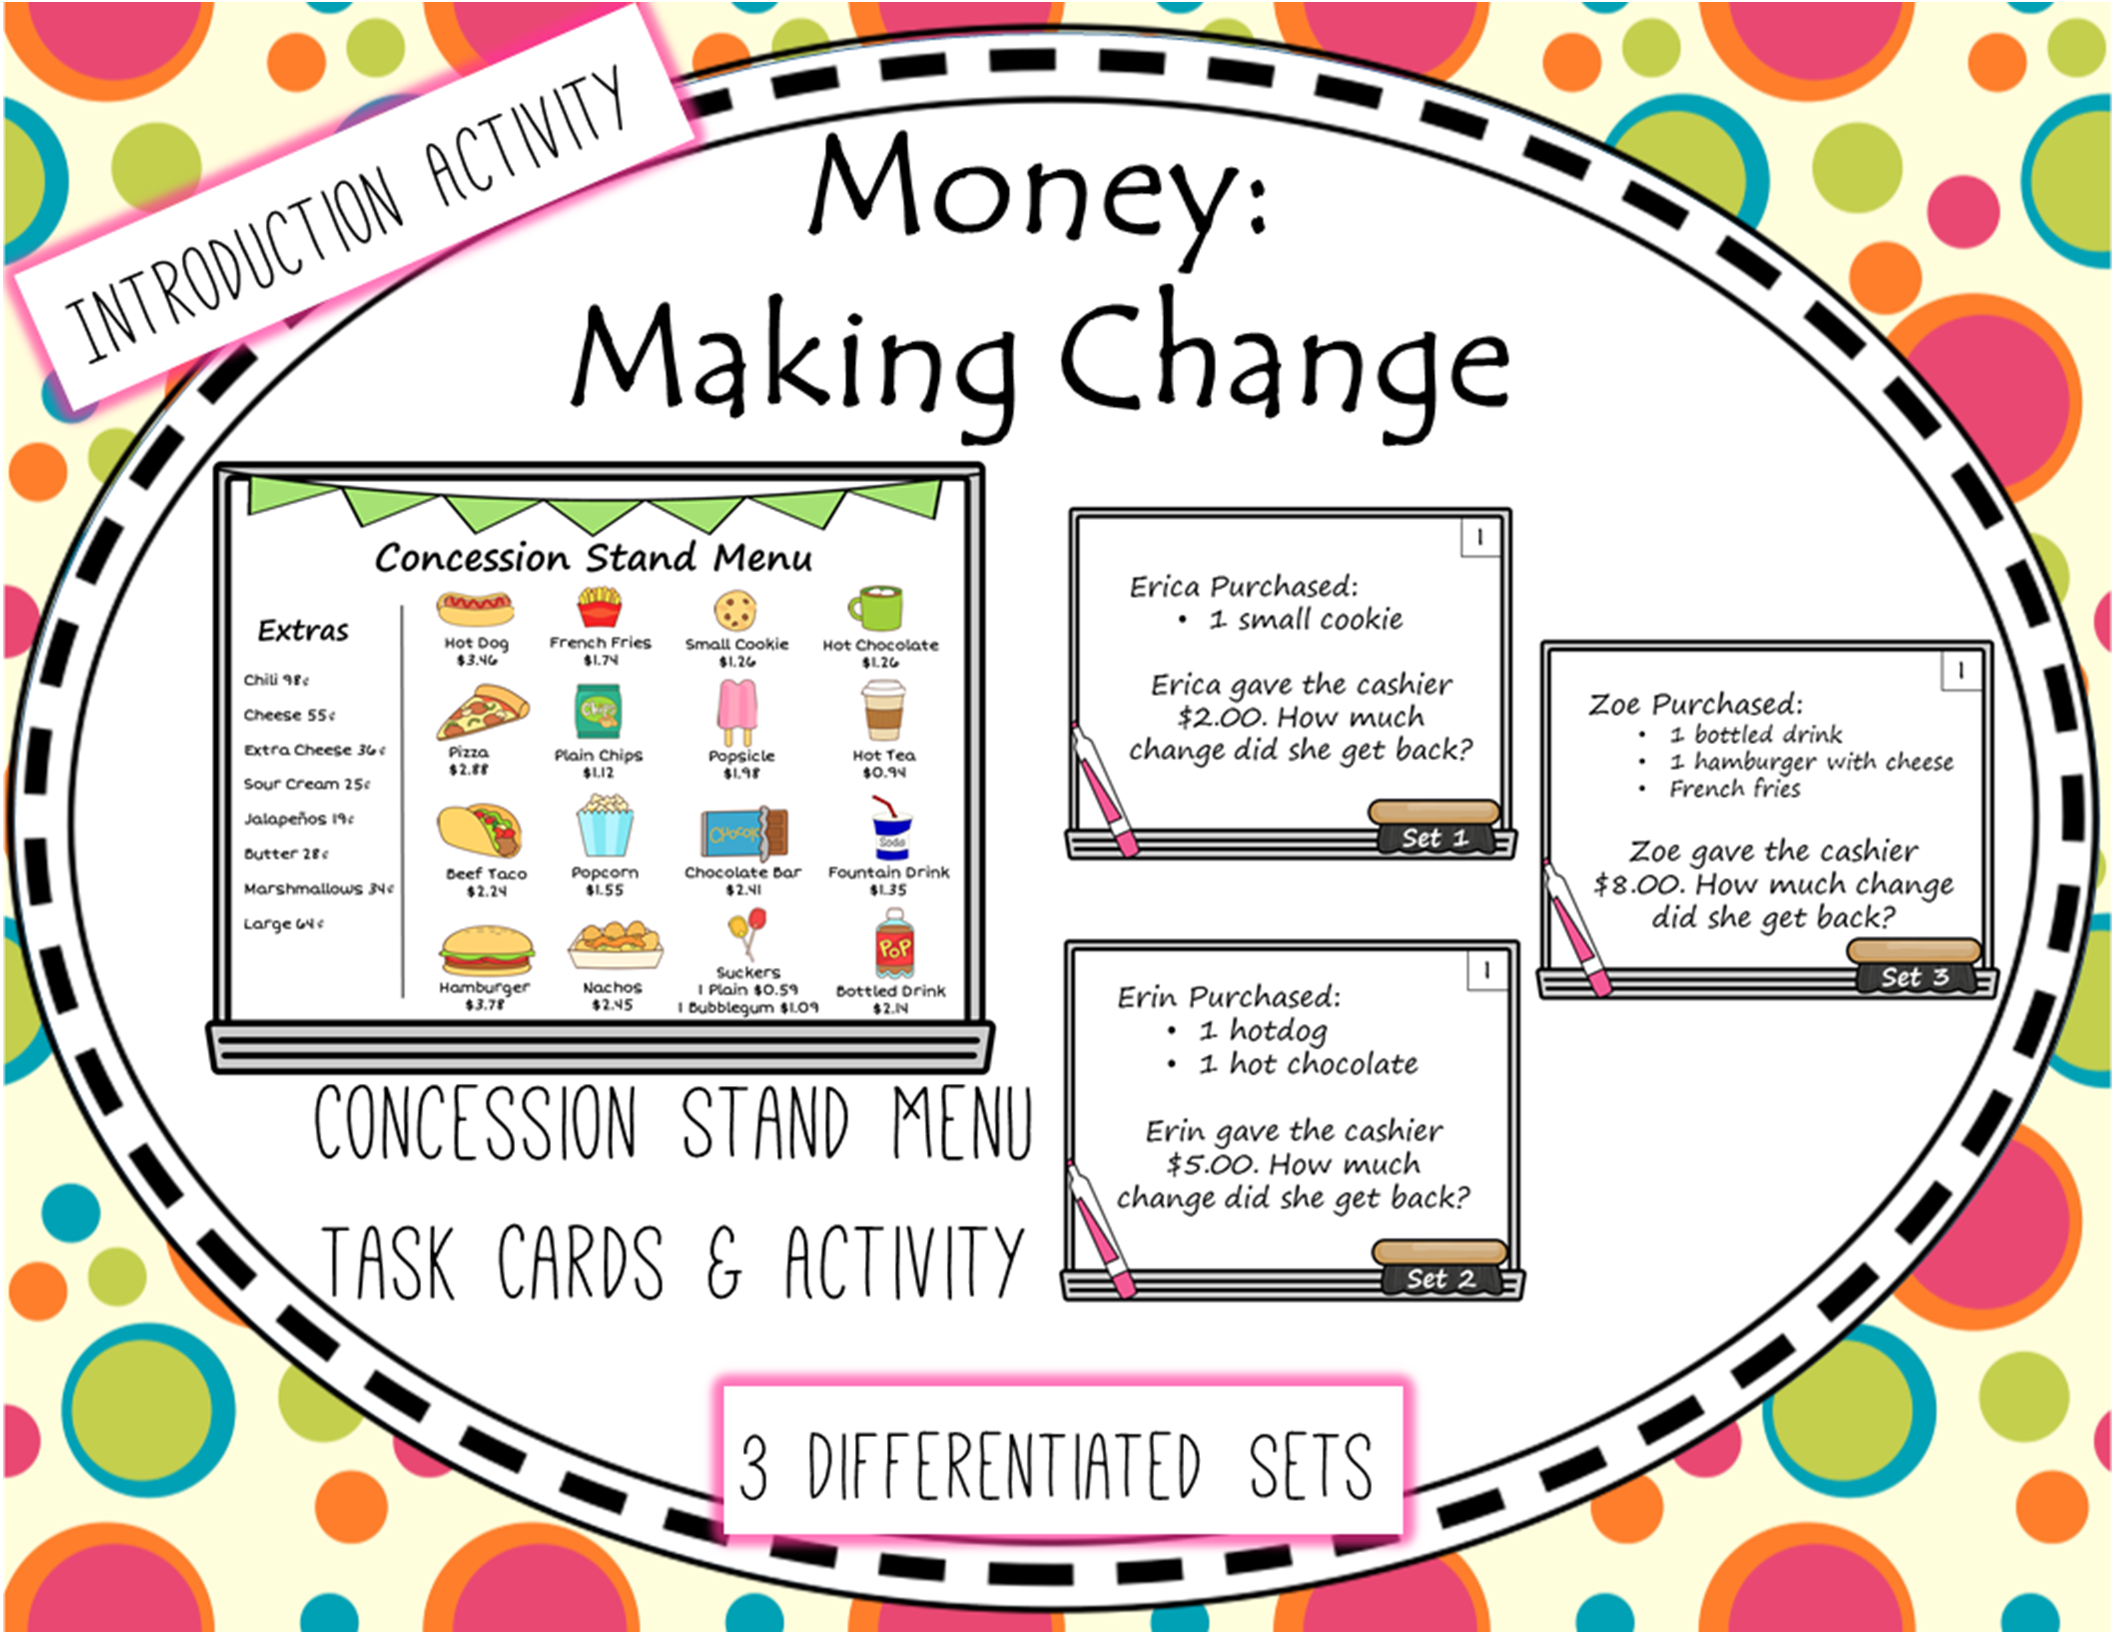 Money Making Change With Images